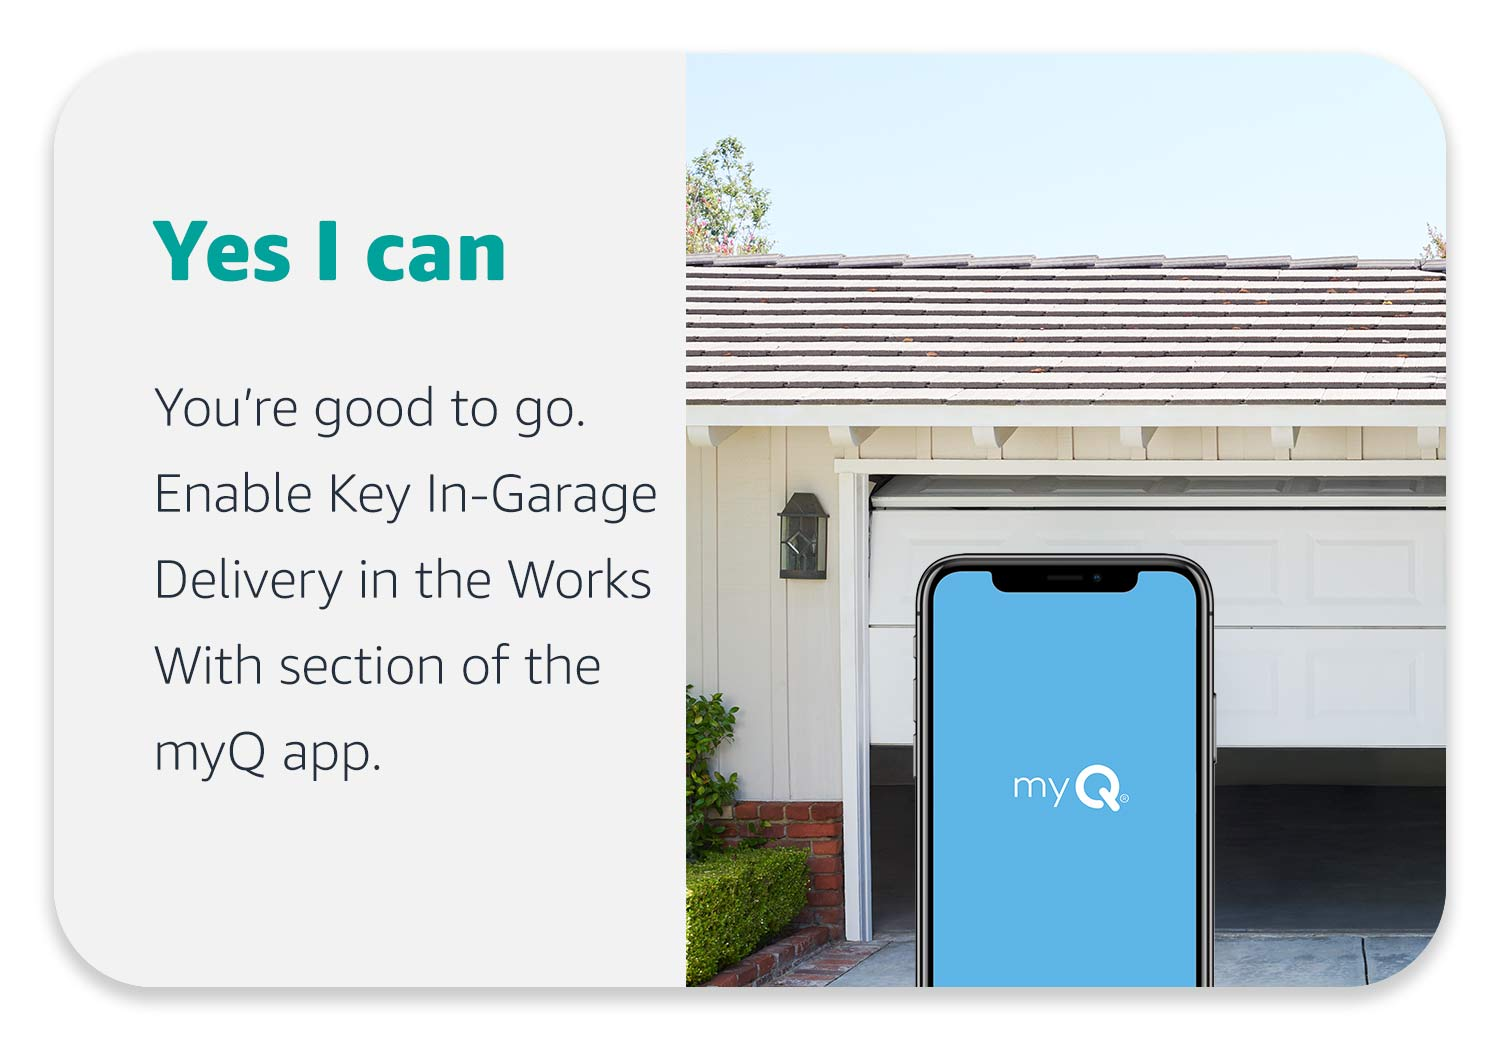 Yes I can. You're good to go. Enable Key In-Garage Delivery in the Works With section of the myQ app.